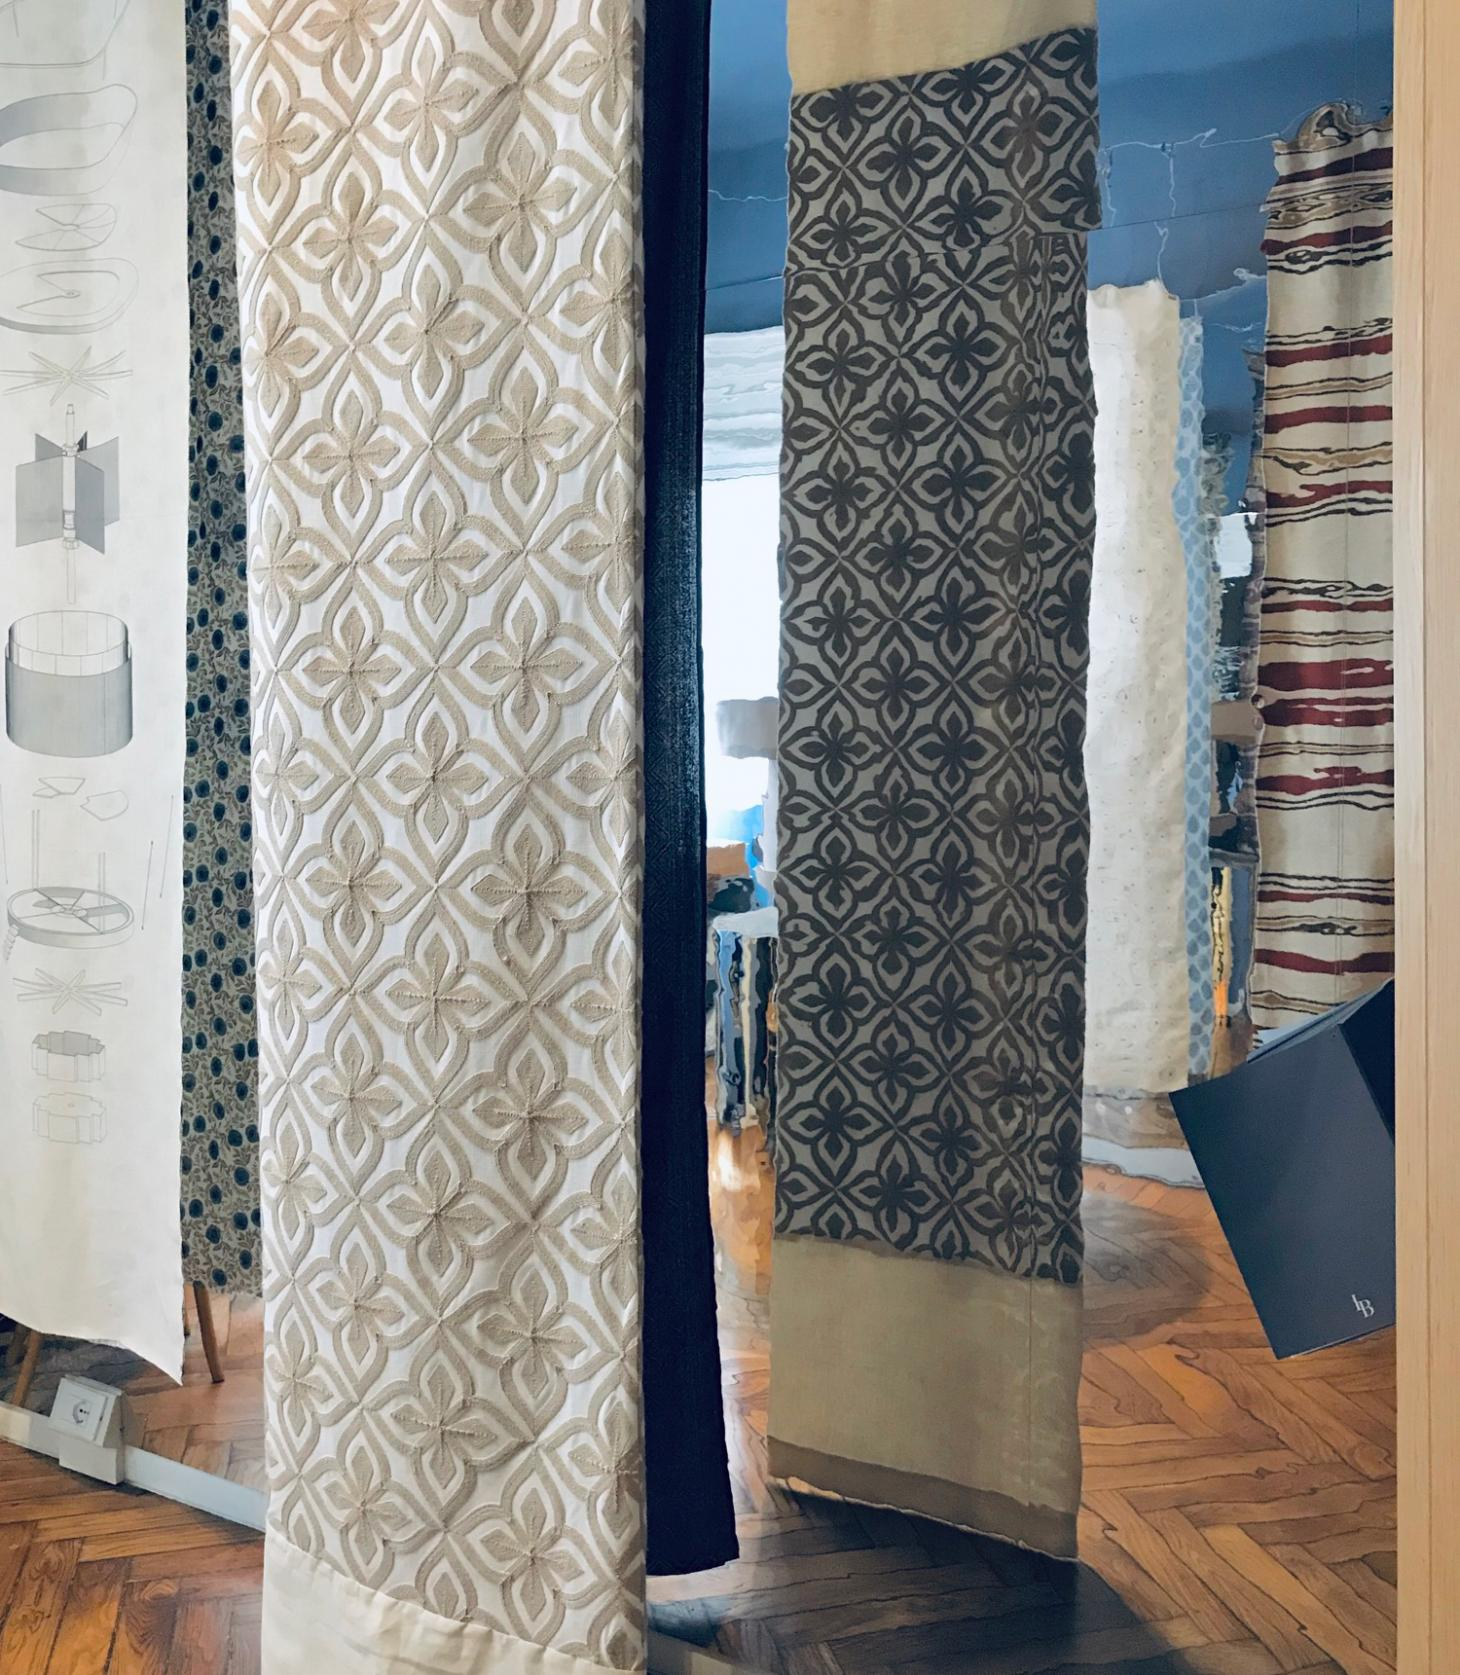 Textiles in the exhibition